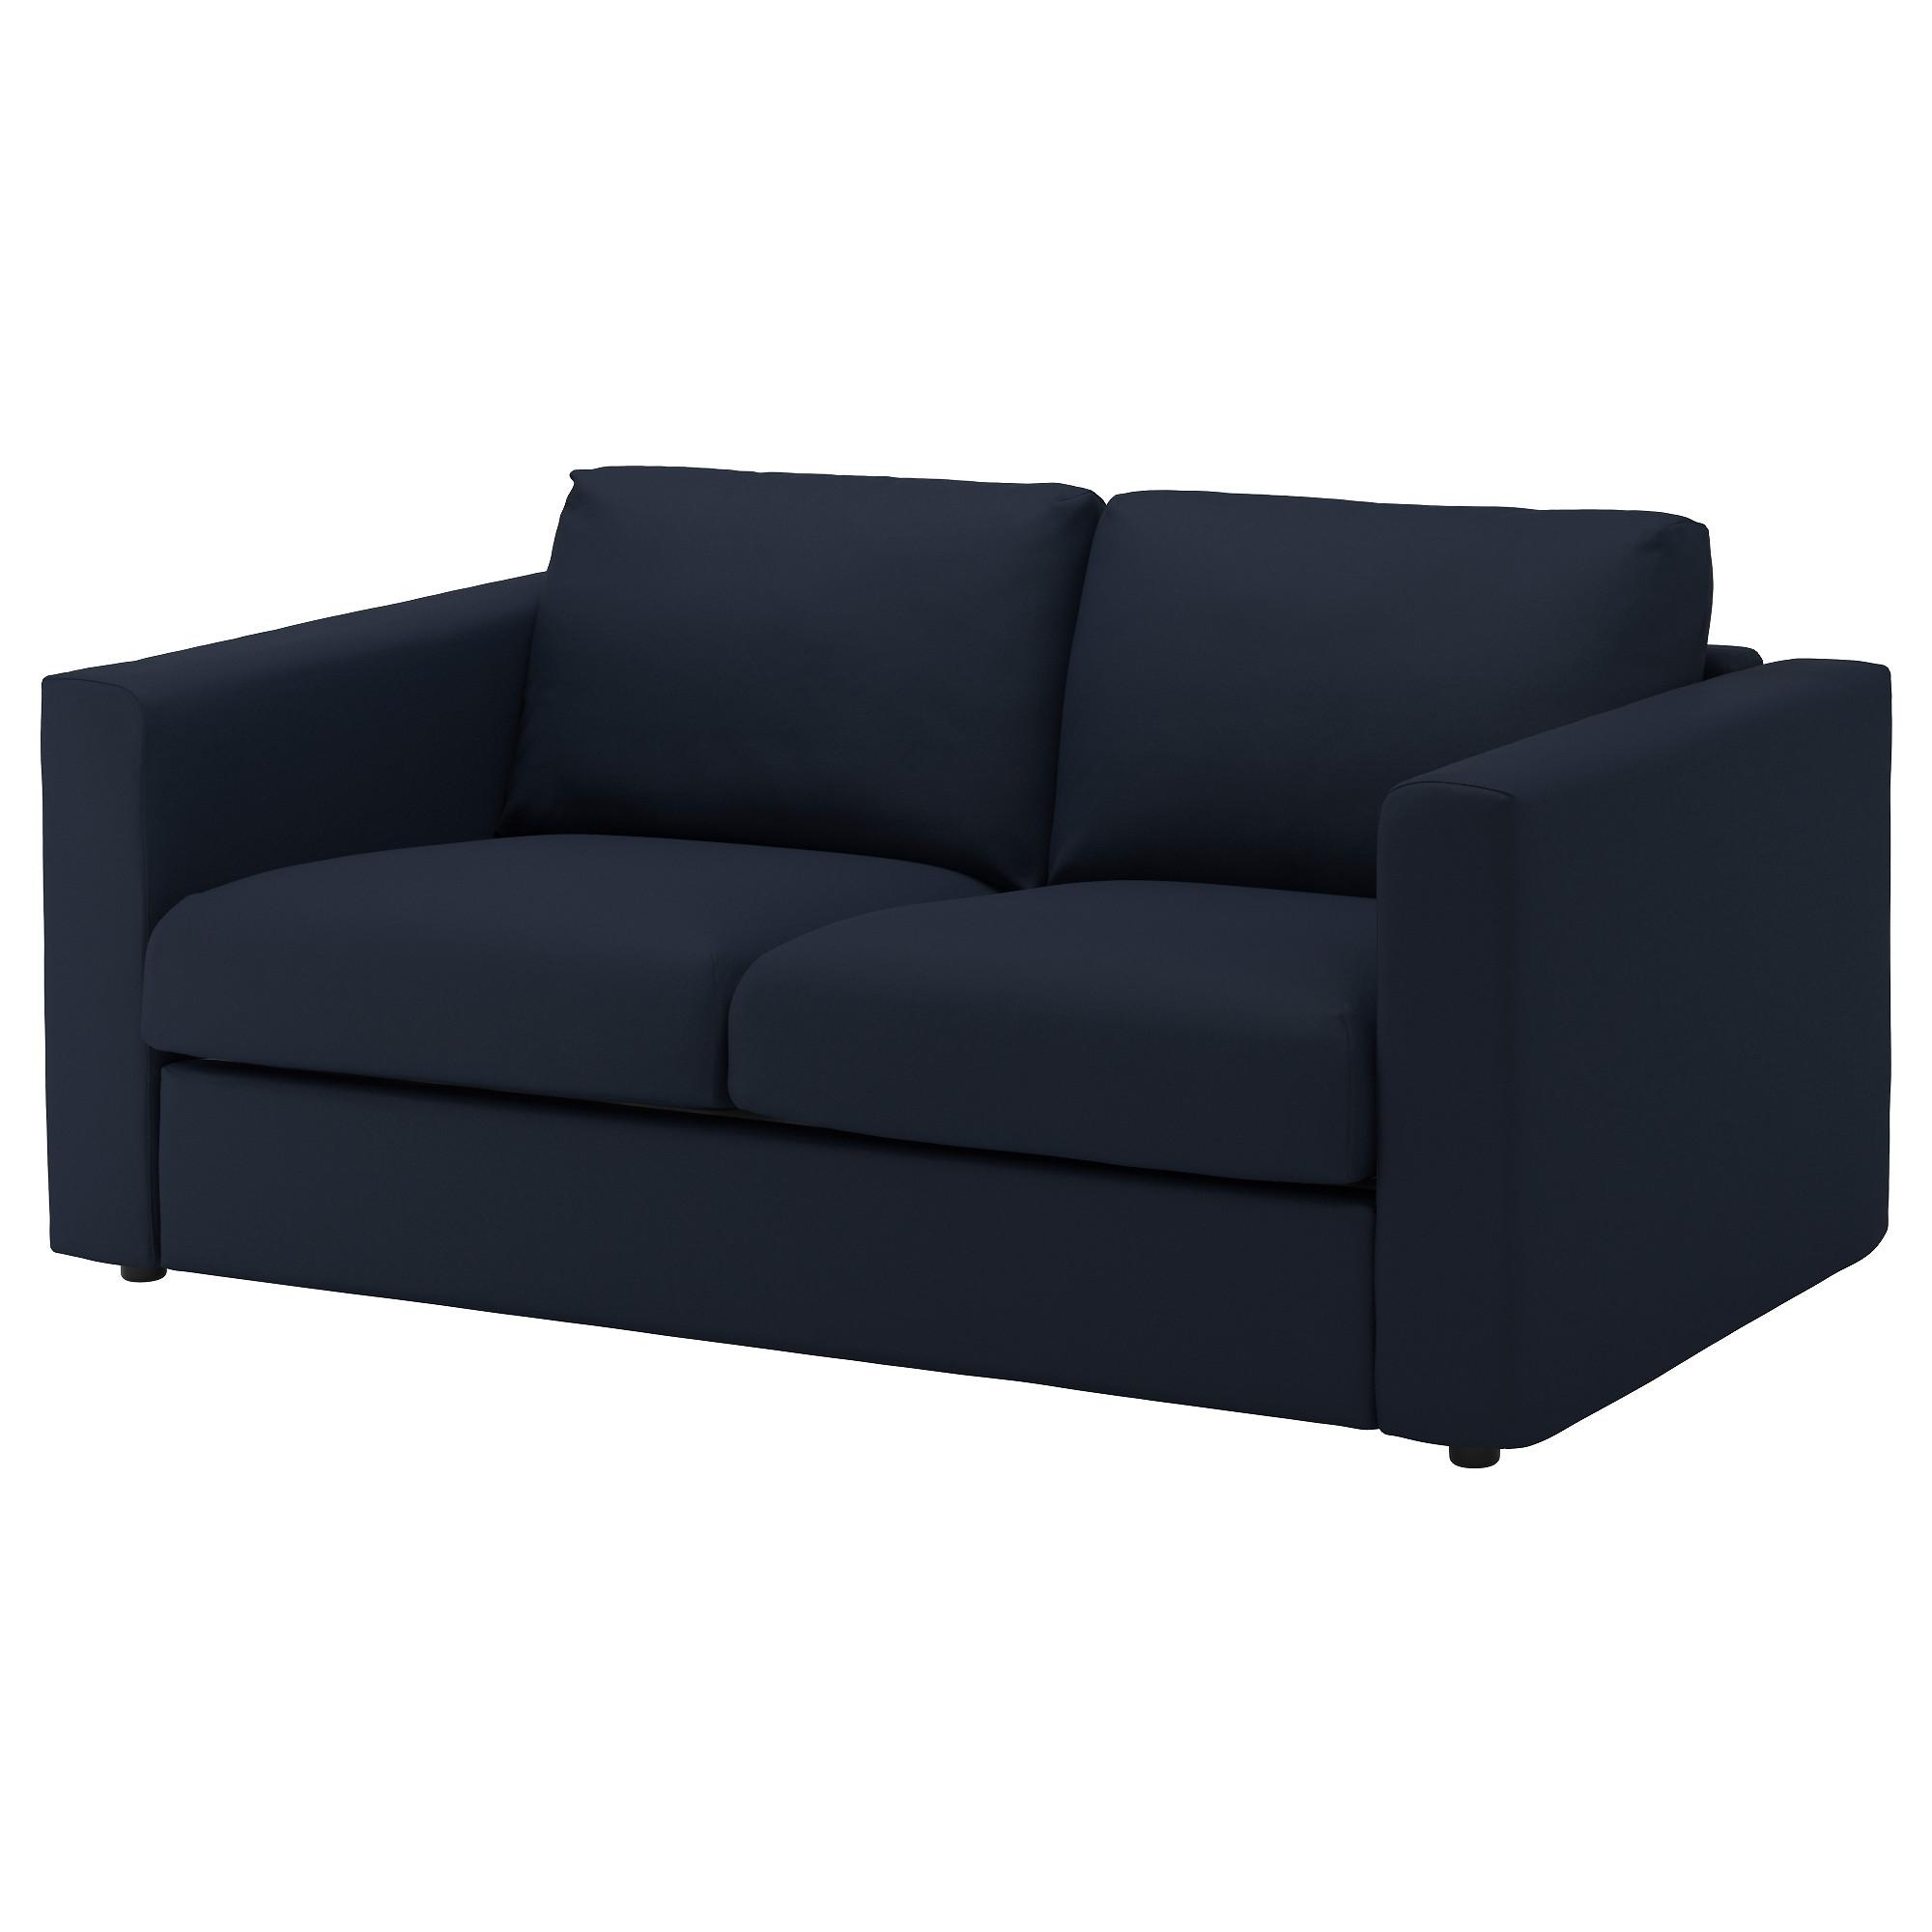 20 choices of ikea two seater sofas sofa ideas for Ikea divan